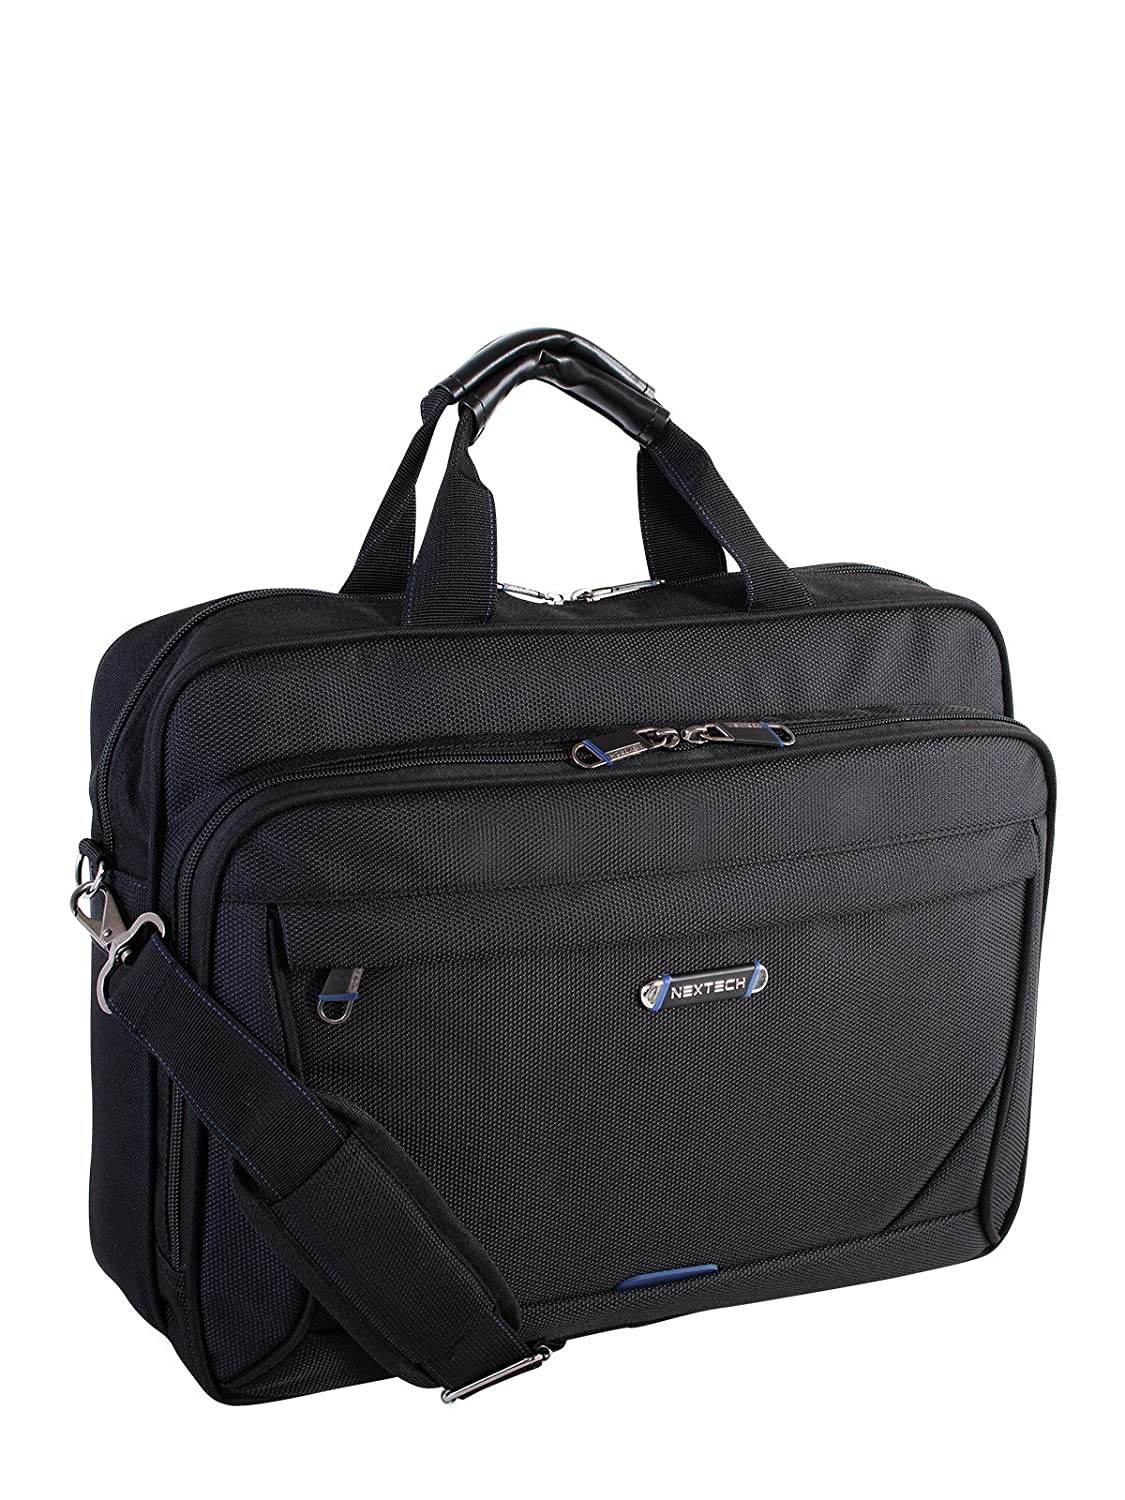 NEXTECH NXT1013009 Concord Deluxe Slim Brief Messenger Bag, Black, Under Seat TP-HOLIDAY GROUP LIMITED